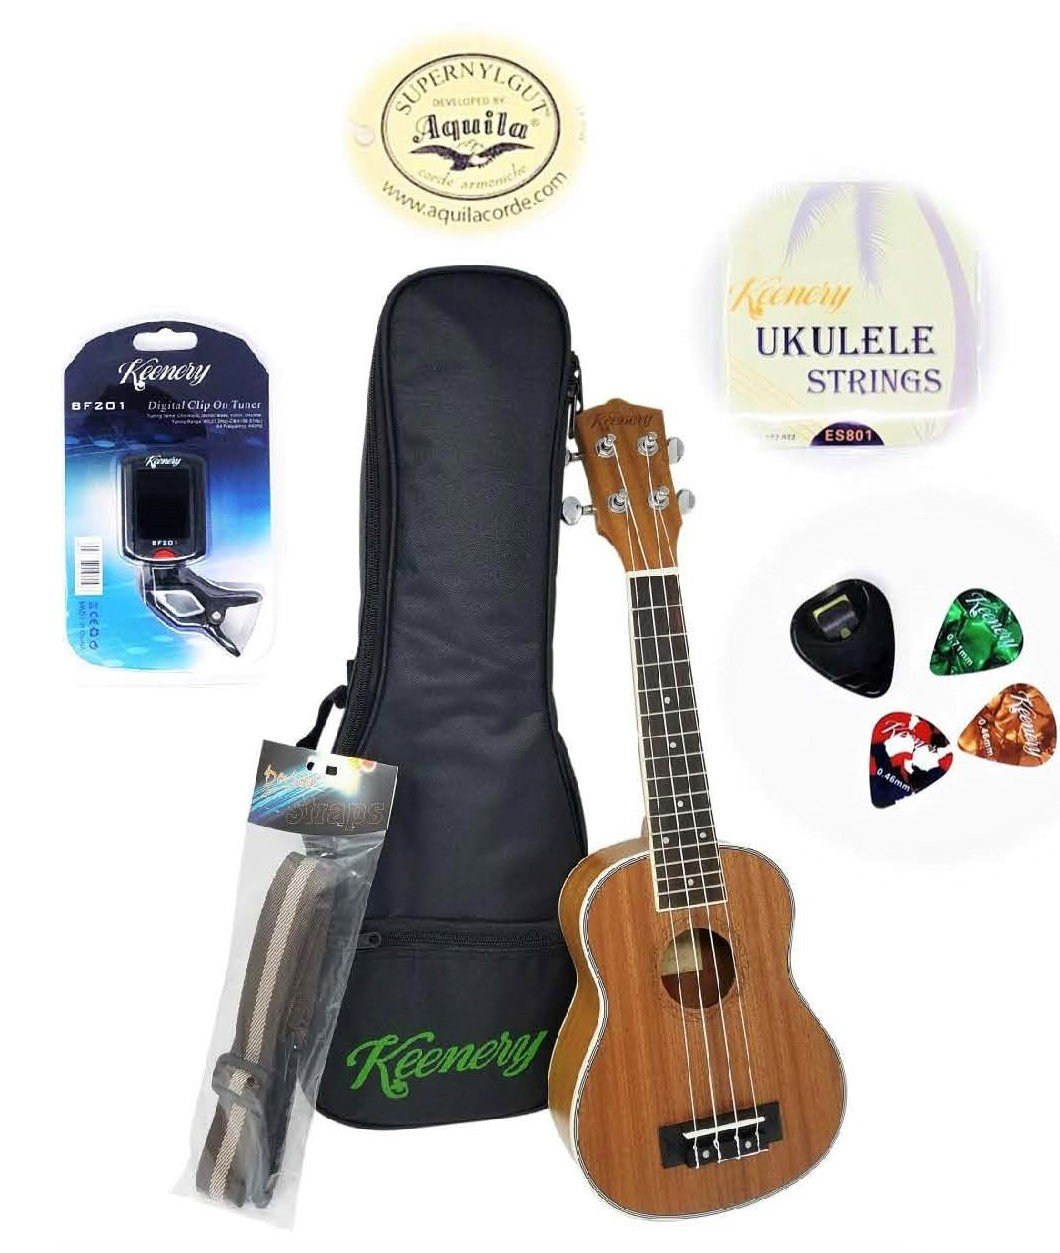 Keenery 21'' Handcrafted Professional Mahogany Soprano Ukulele Now with Aquila Strings Starter Kit With Gig Bag, Strap, Extra Strings, Picks, Tuner